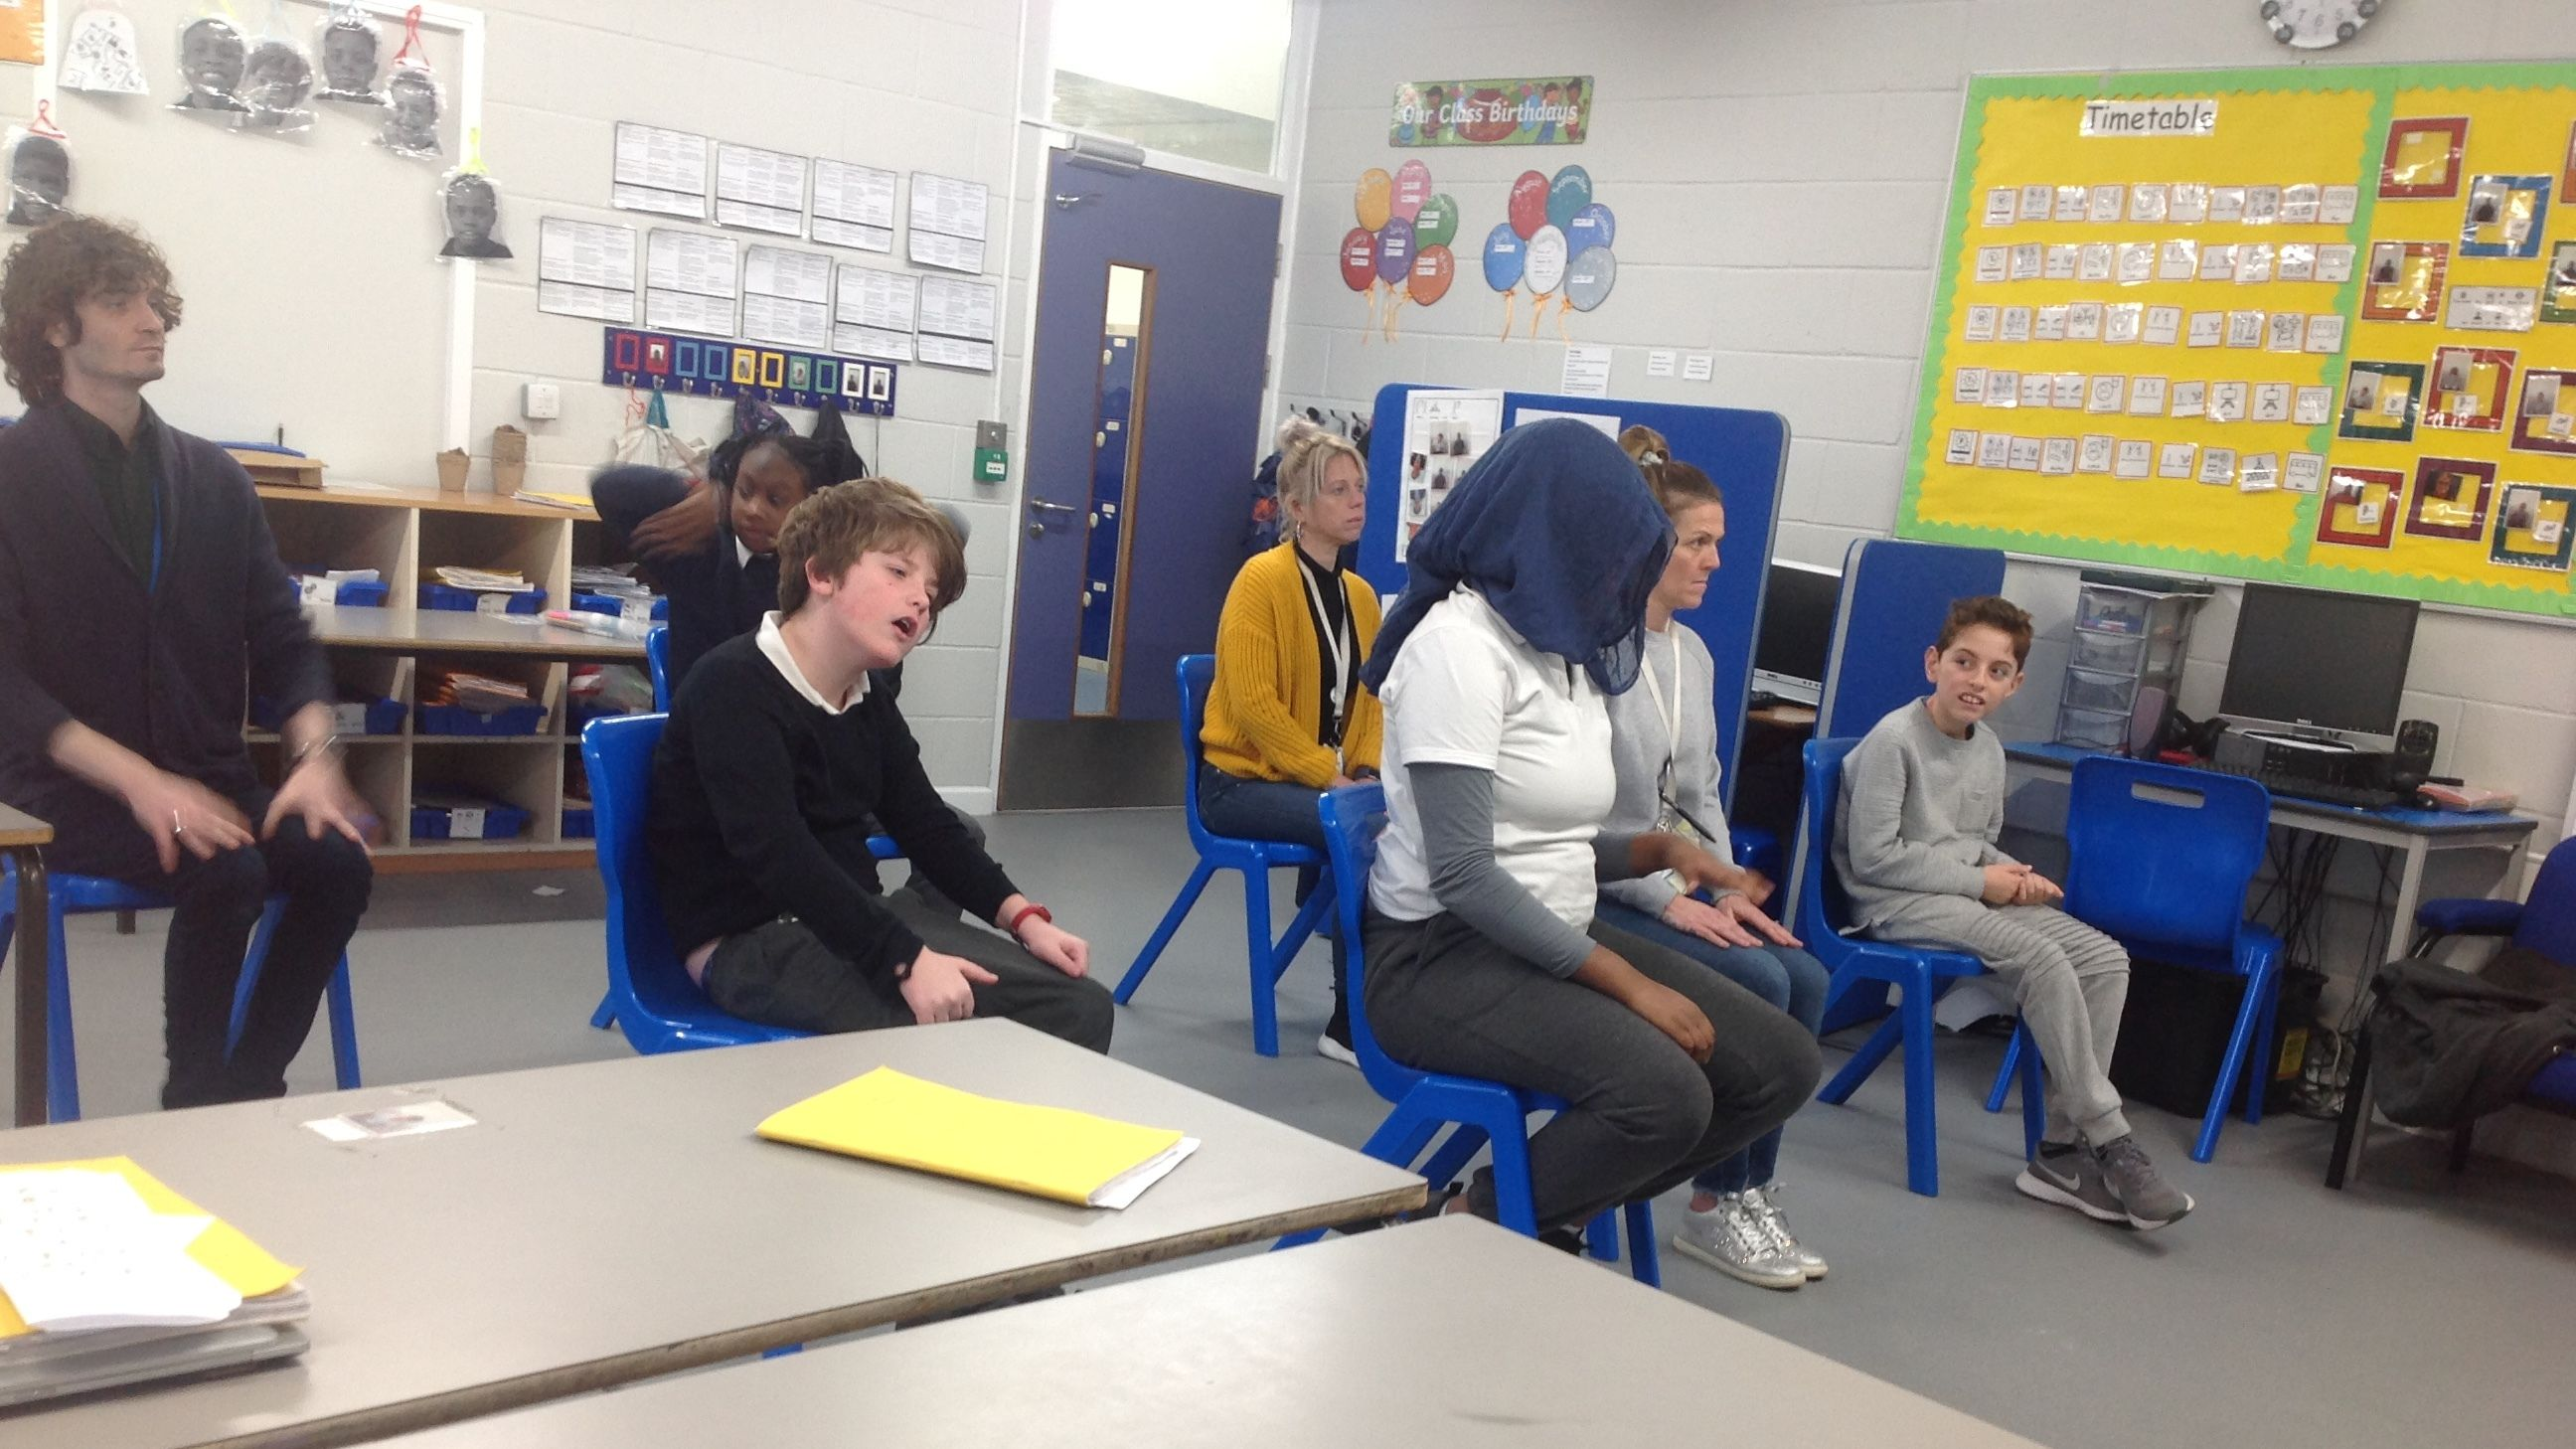 Students in a class sitting socially distanced